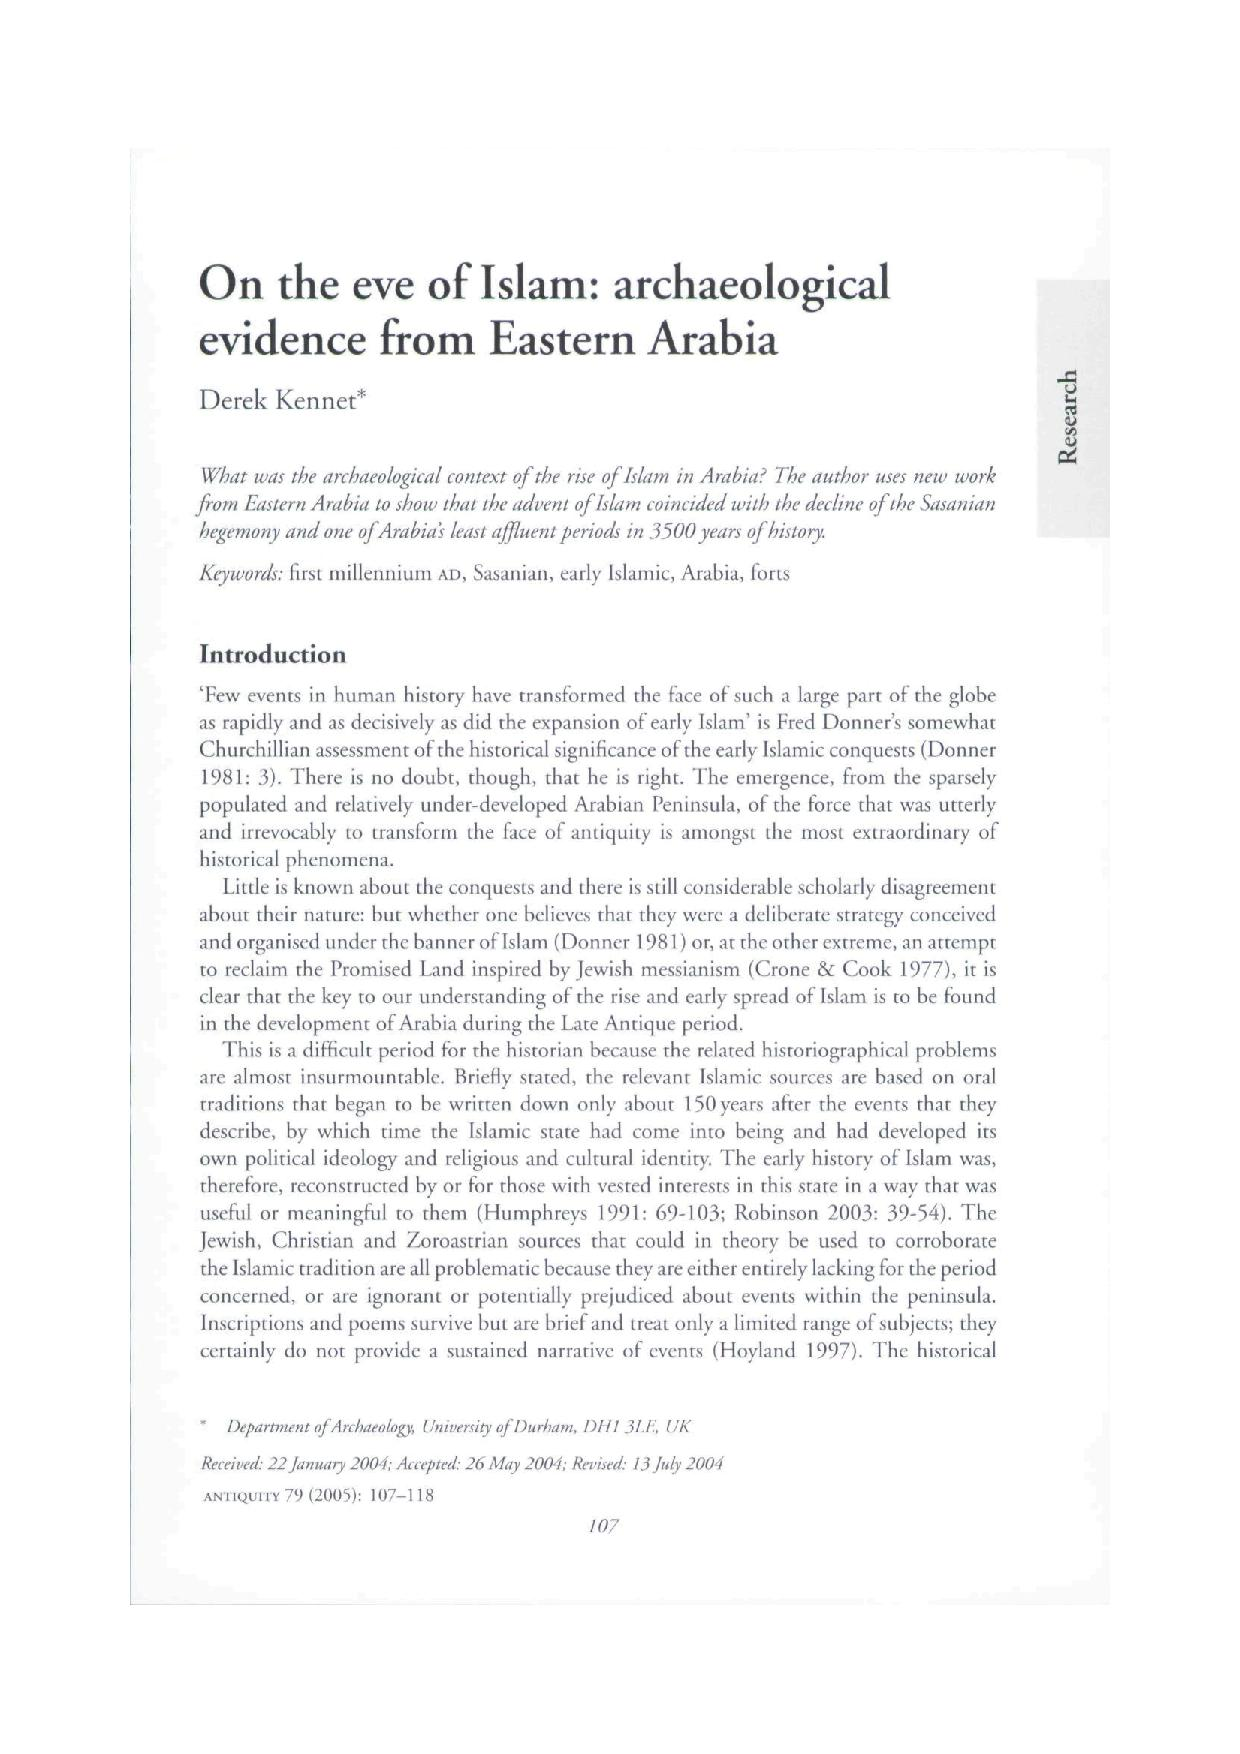 On the eve of Islam archaeological evidence from Eastern Arabia